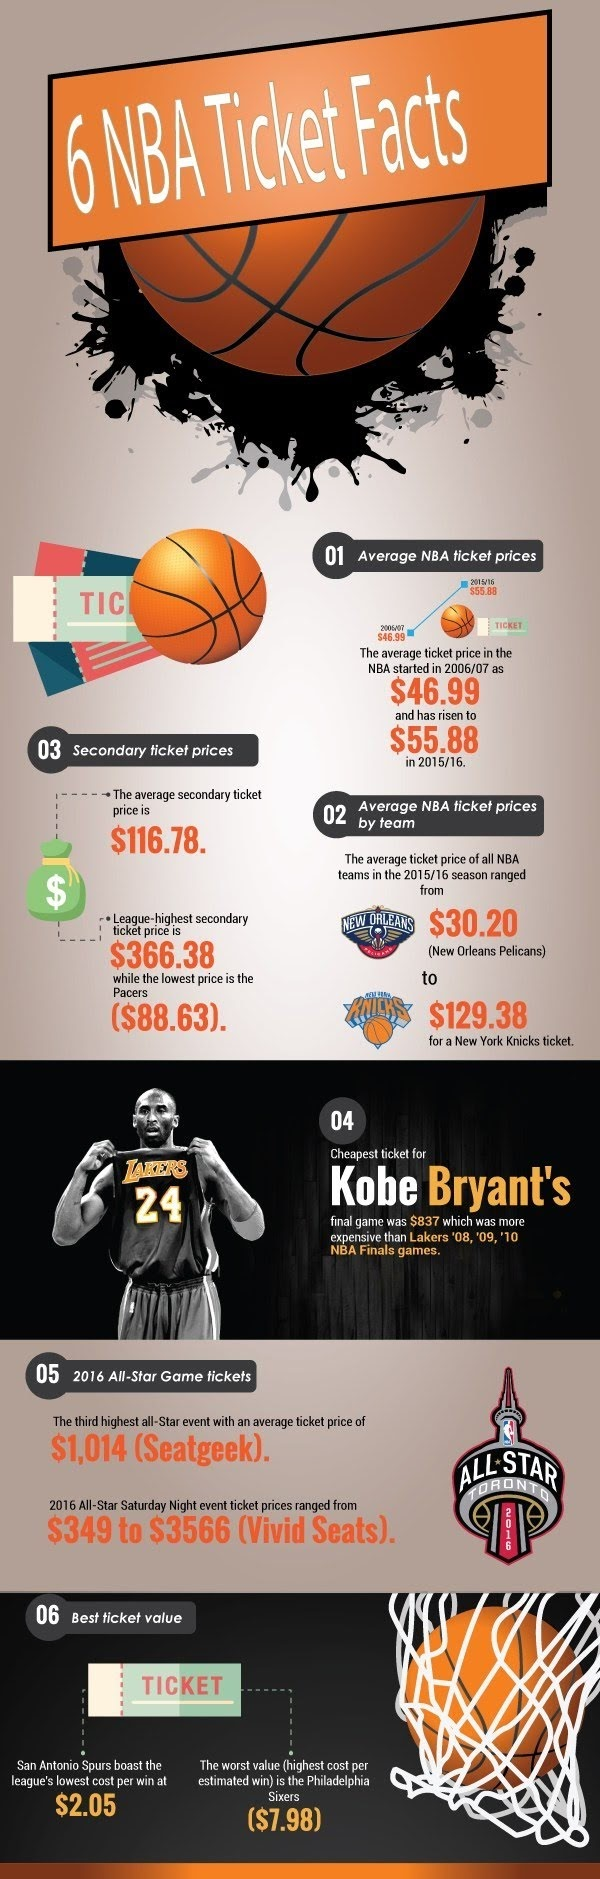 6 NBA Ticket Facts #infographic